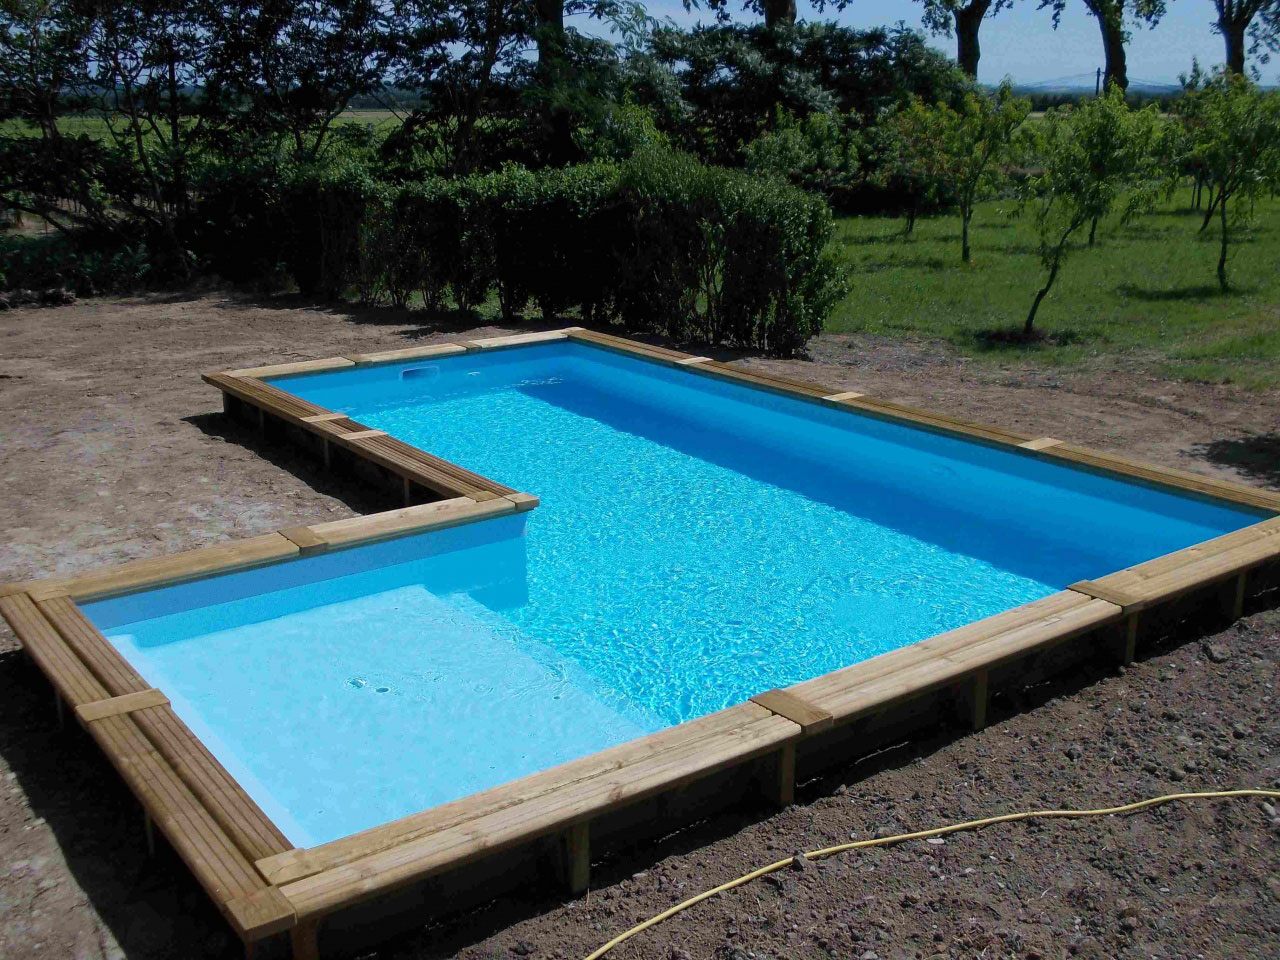 Piscine en bois promo finest piscine bois with piscine en for Promo piscine bois octogonale